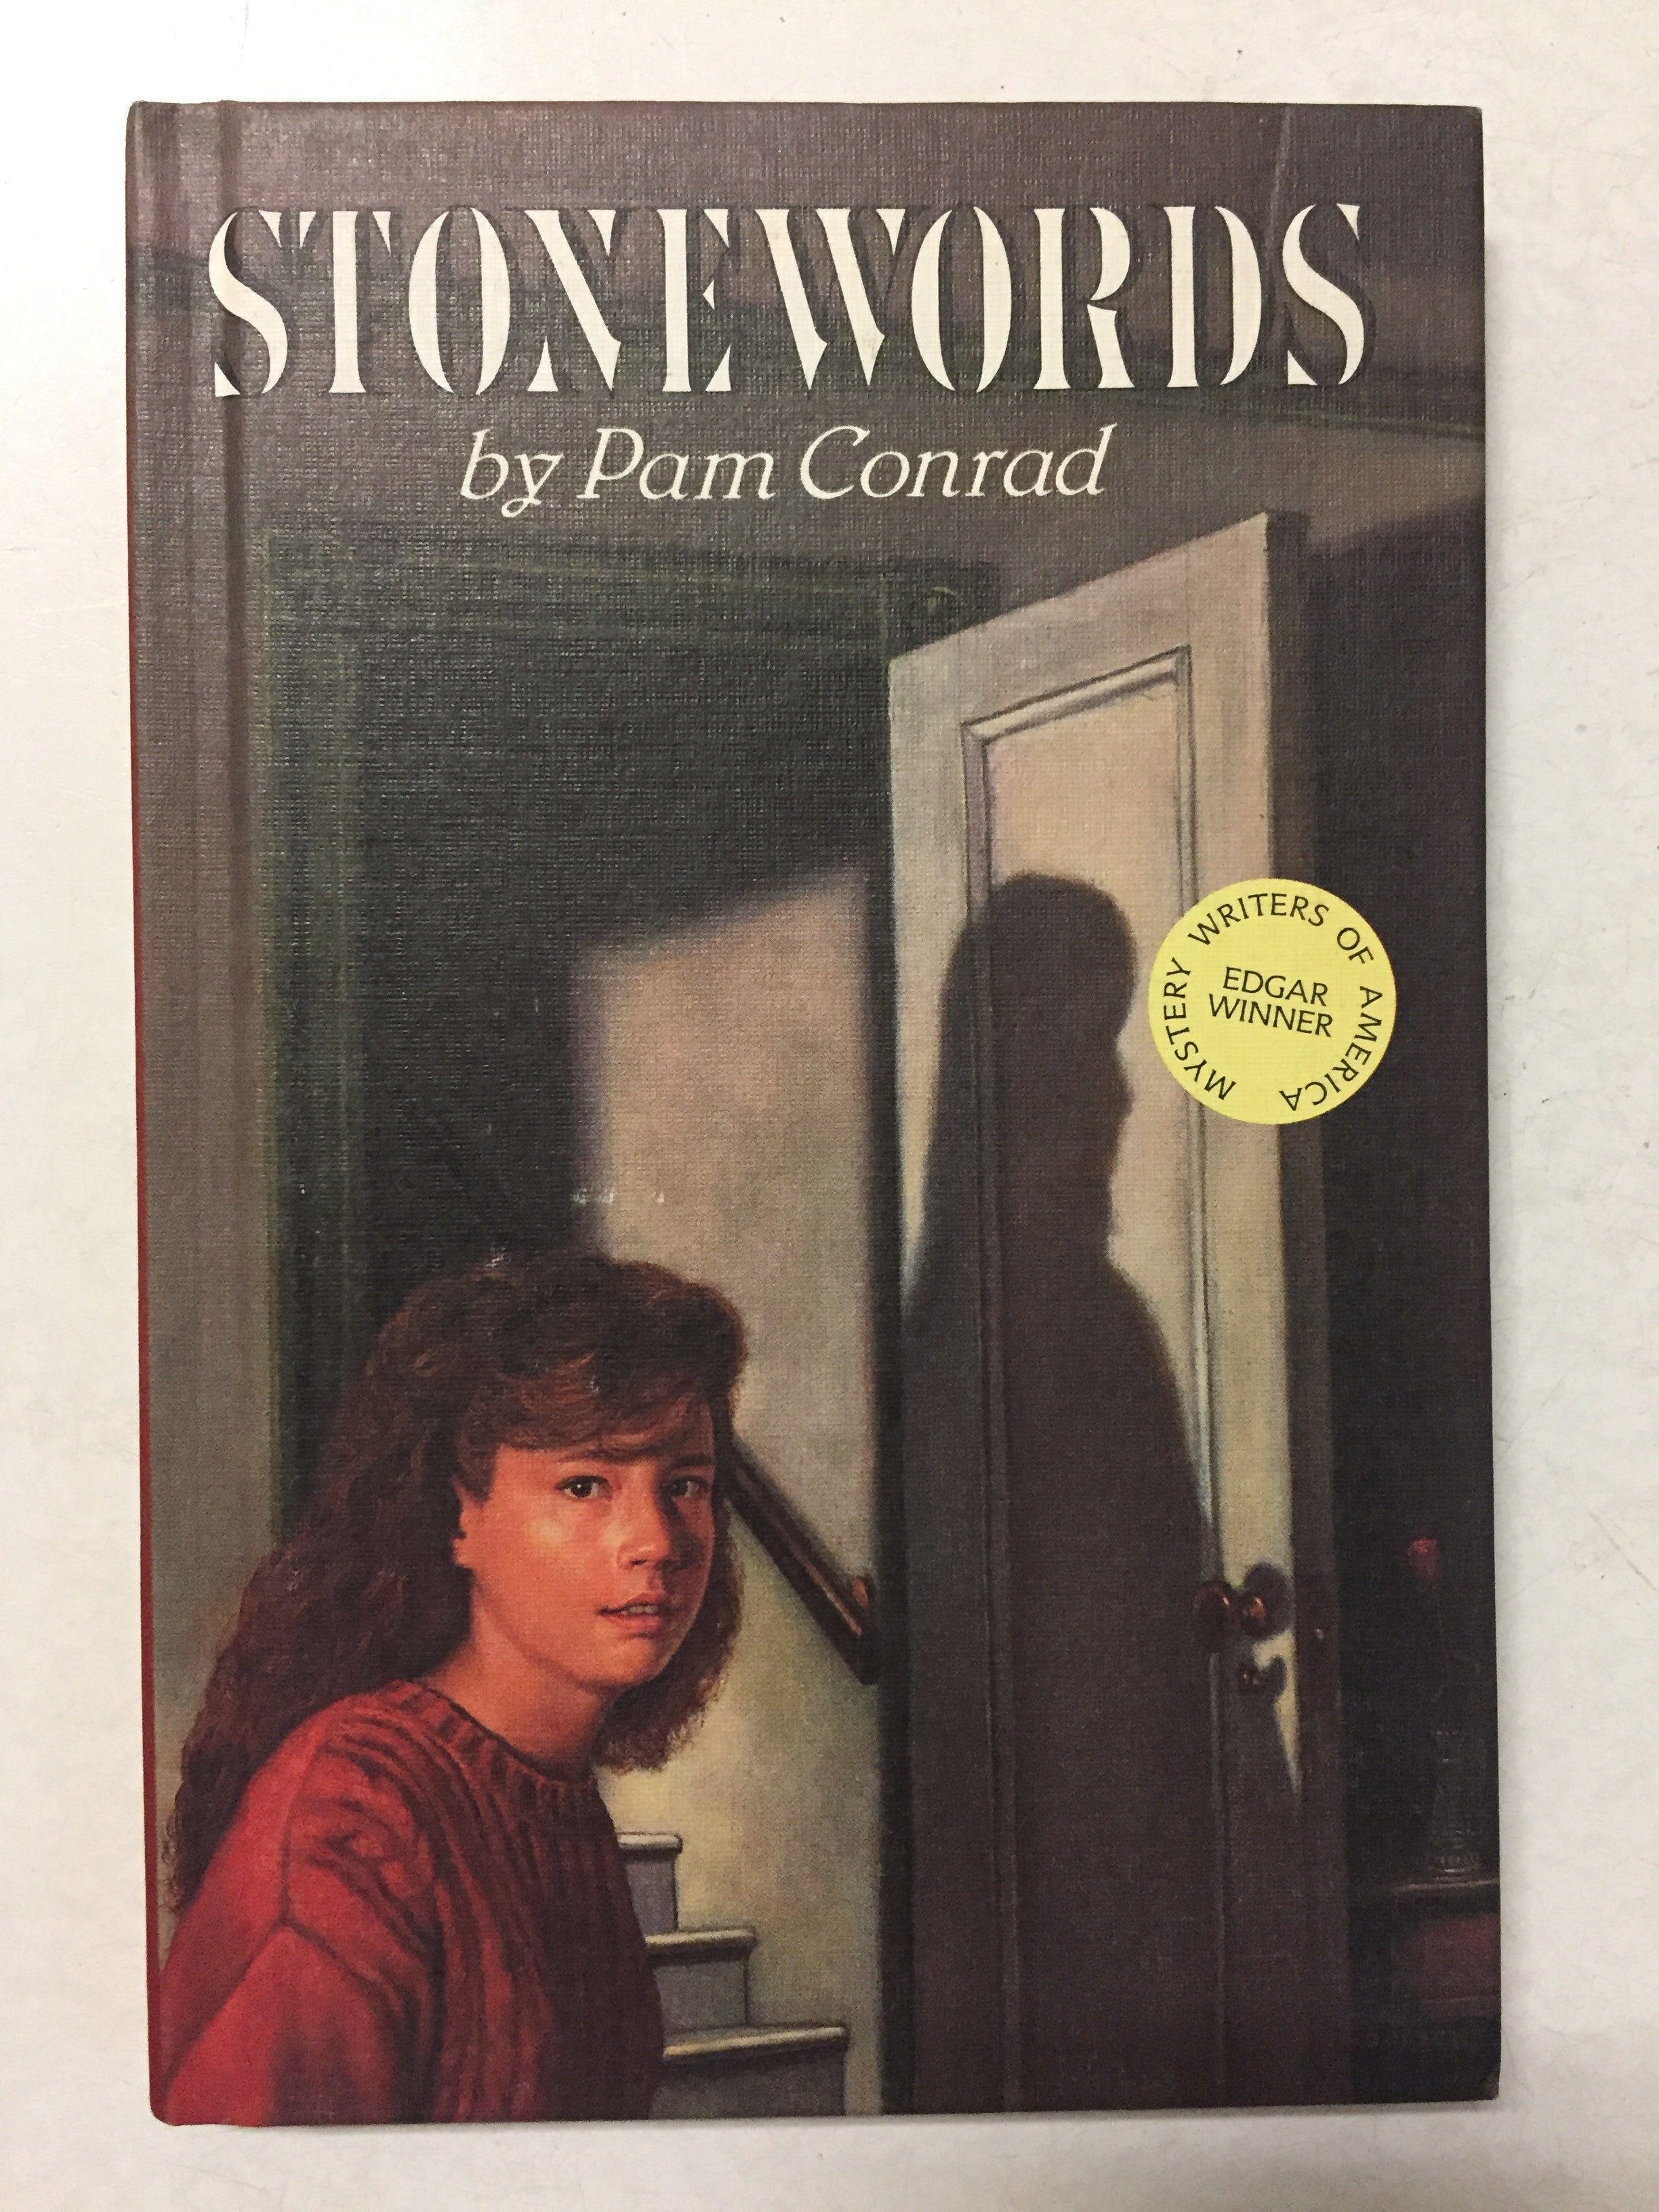 Stonewords: A Ghost Story - Slickcatbooks